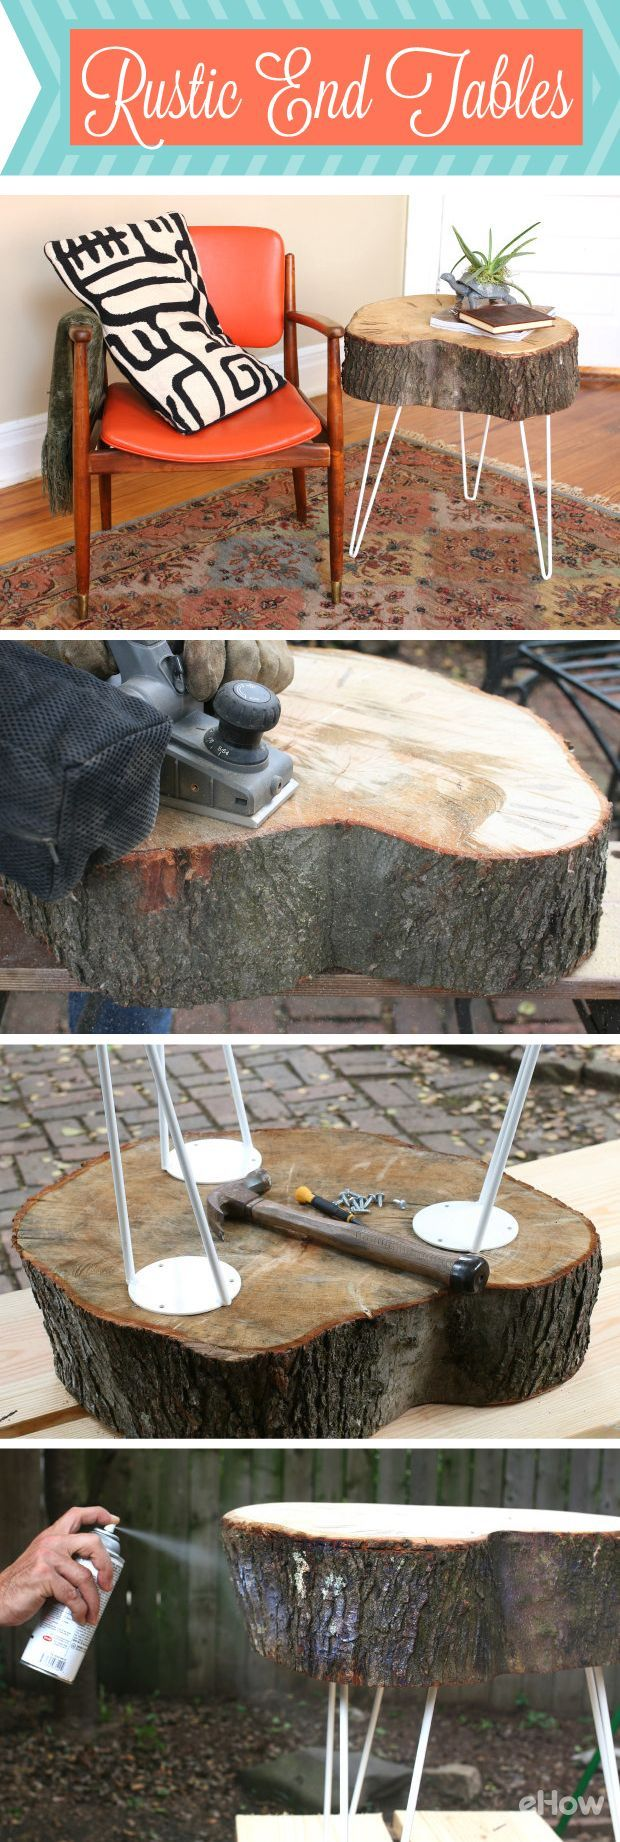 how to make rustic end tables in 2018 wood pinterest rustic rh pinterest com